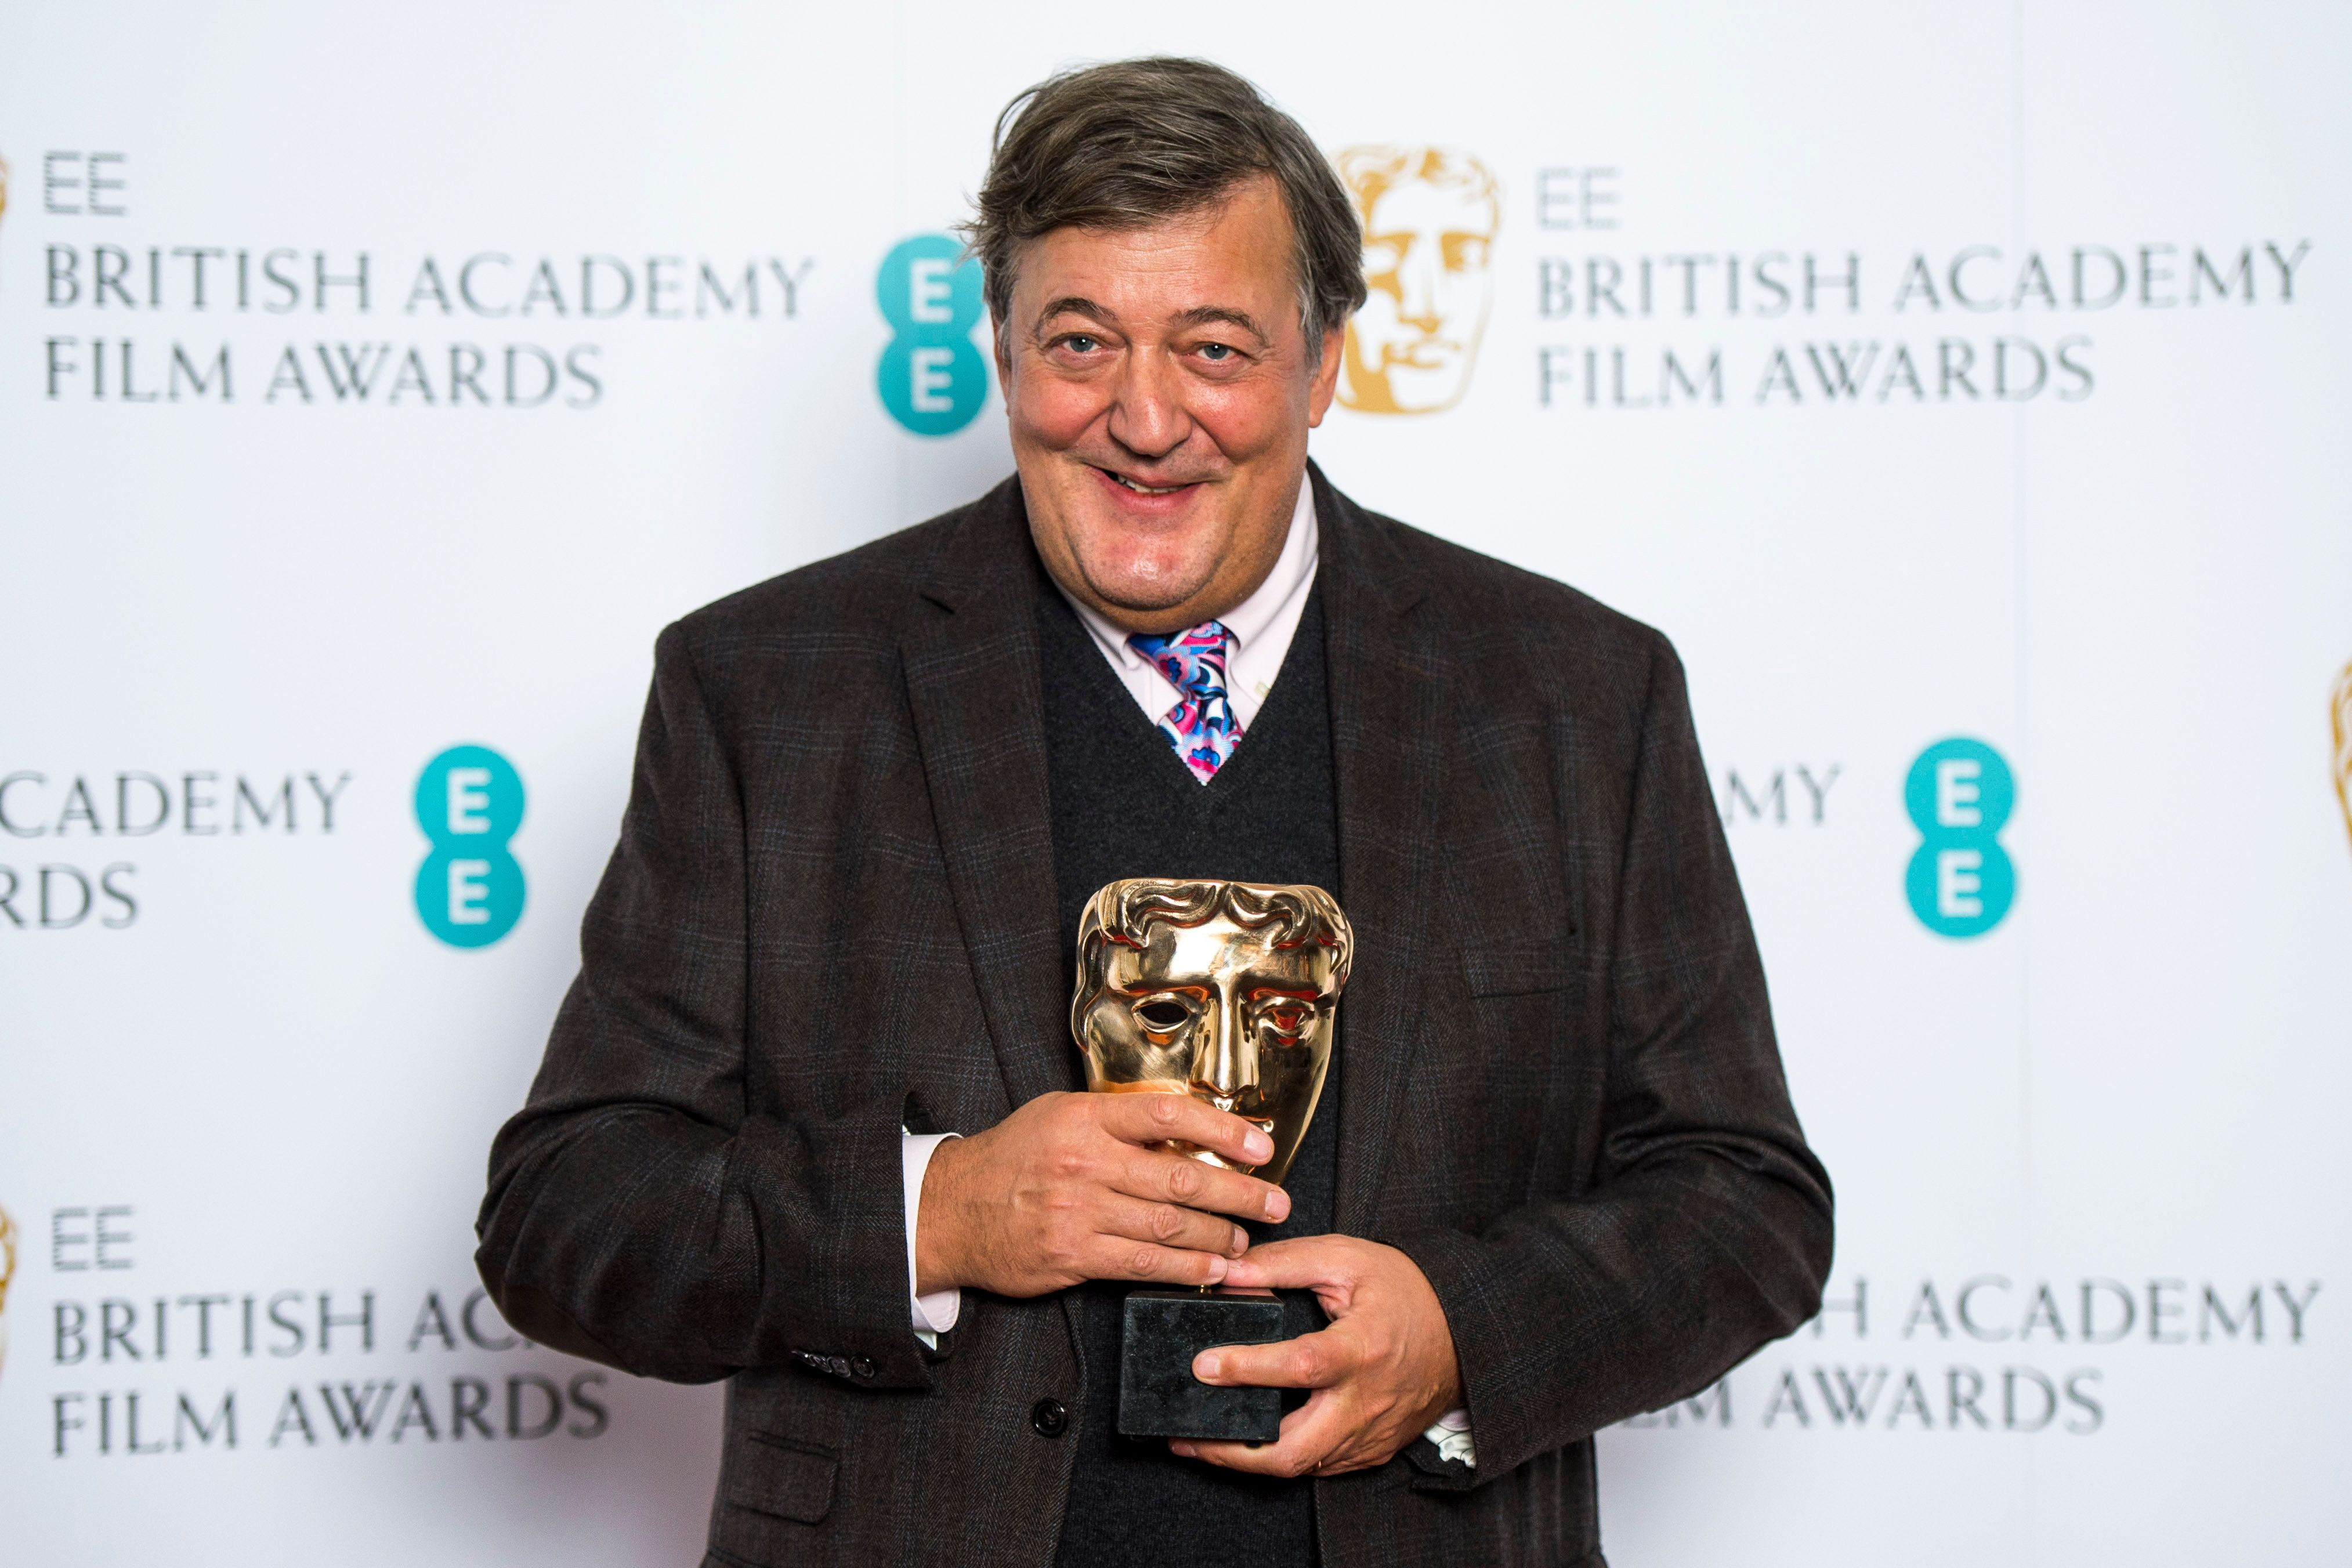 Stephen Fry 'Being Investigated By Police Over Alleged Blasphemy'